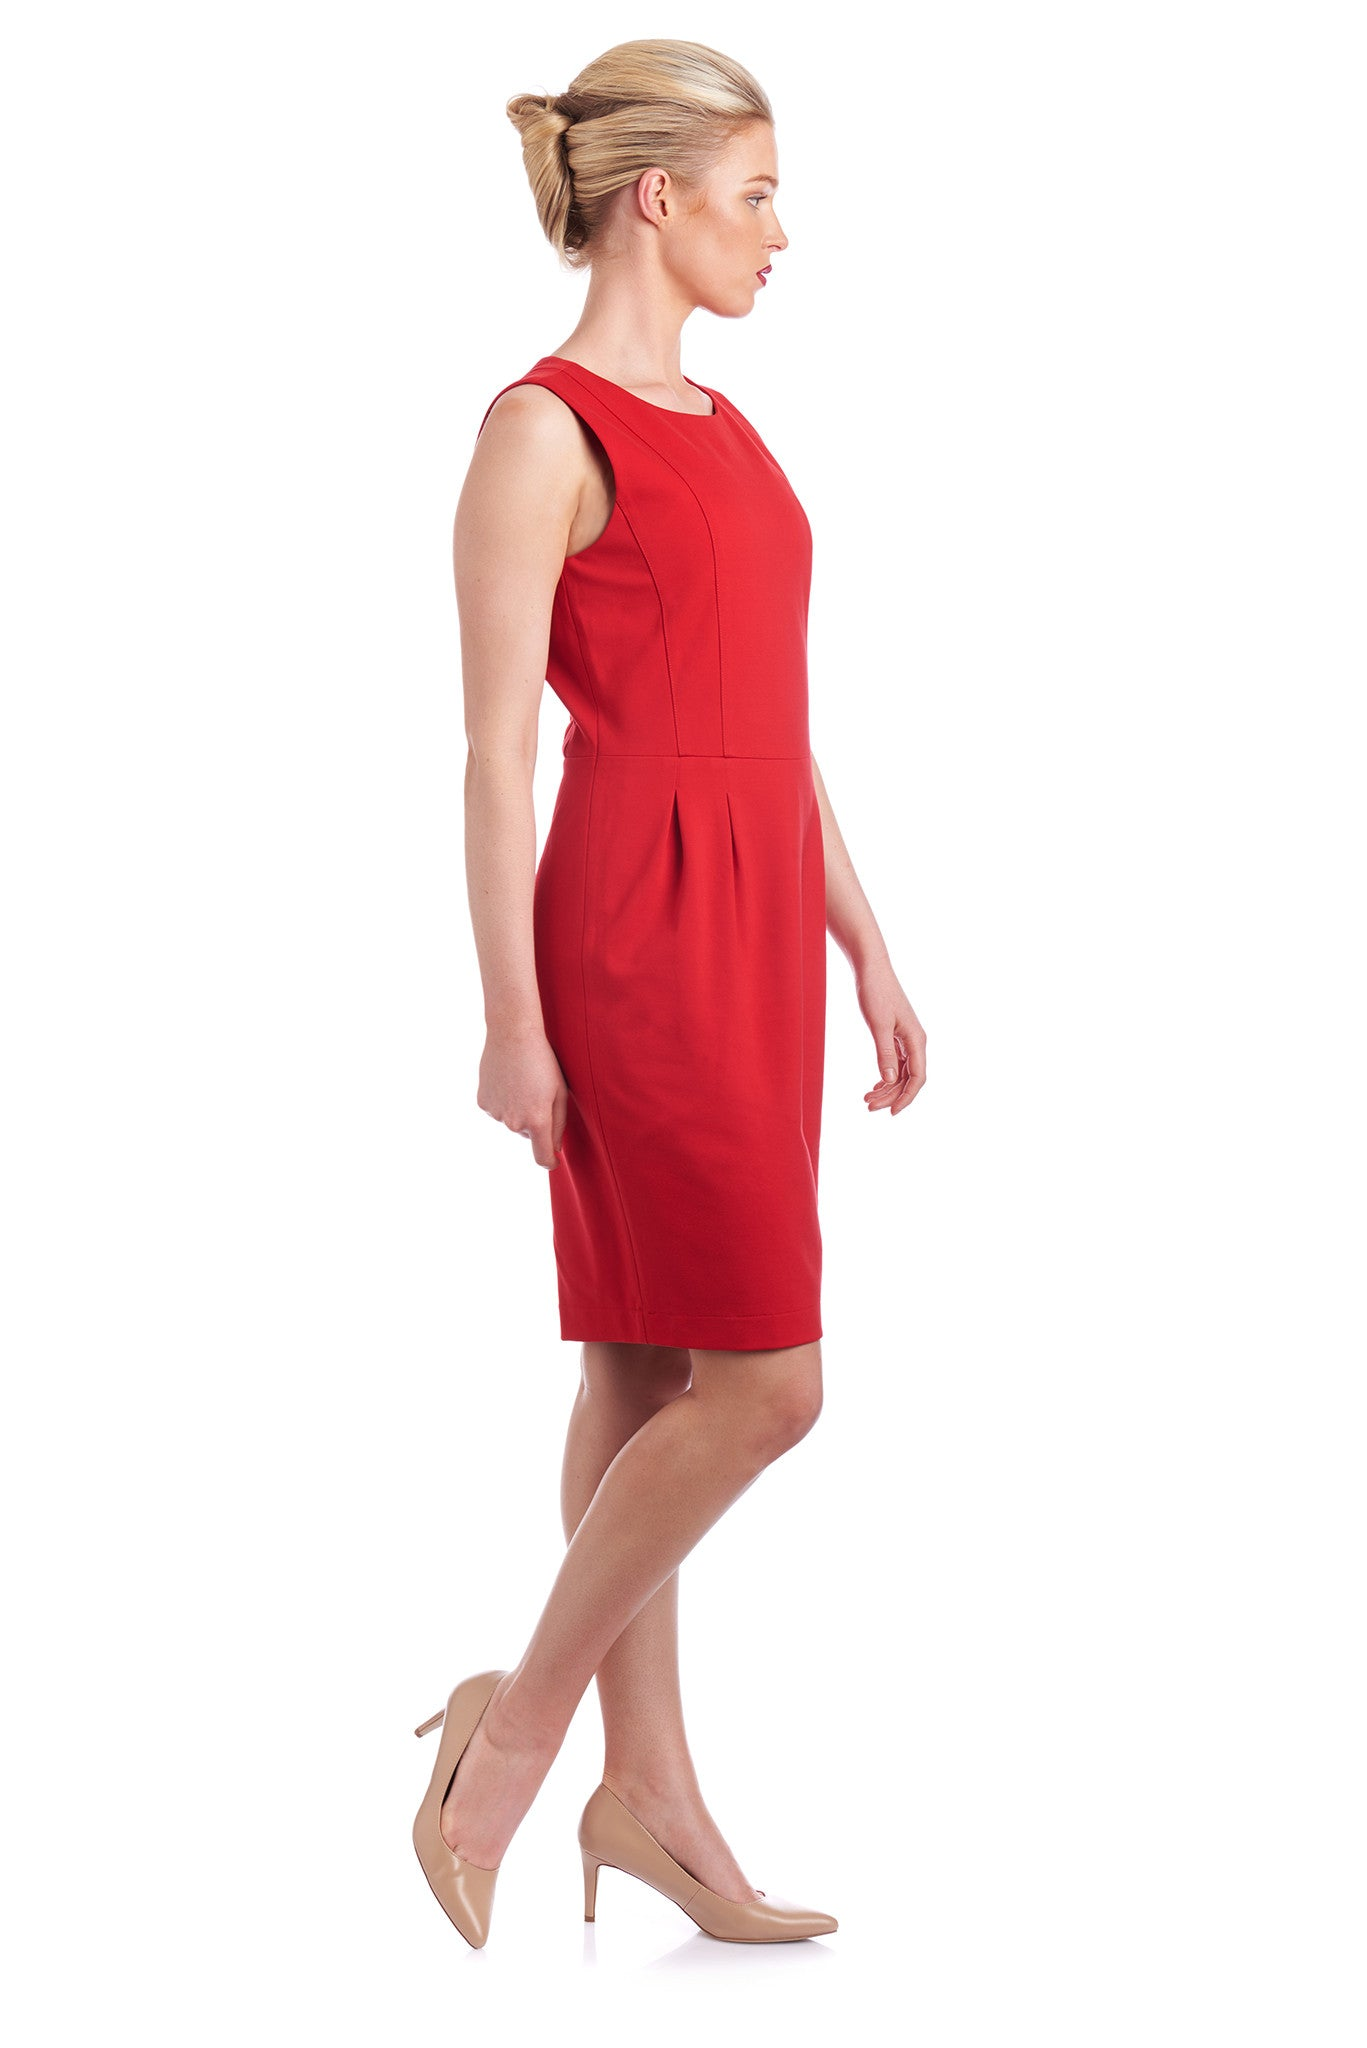 Cusomise the dress length by altering the length of the skirt to suit your body shape.